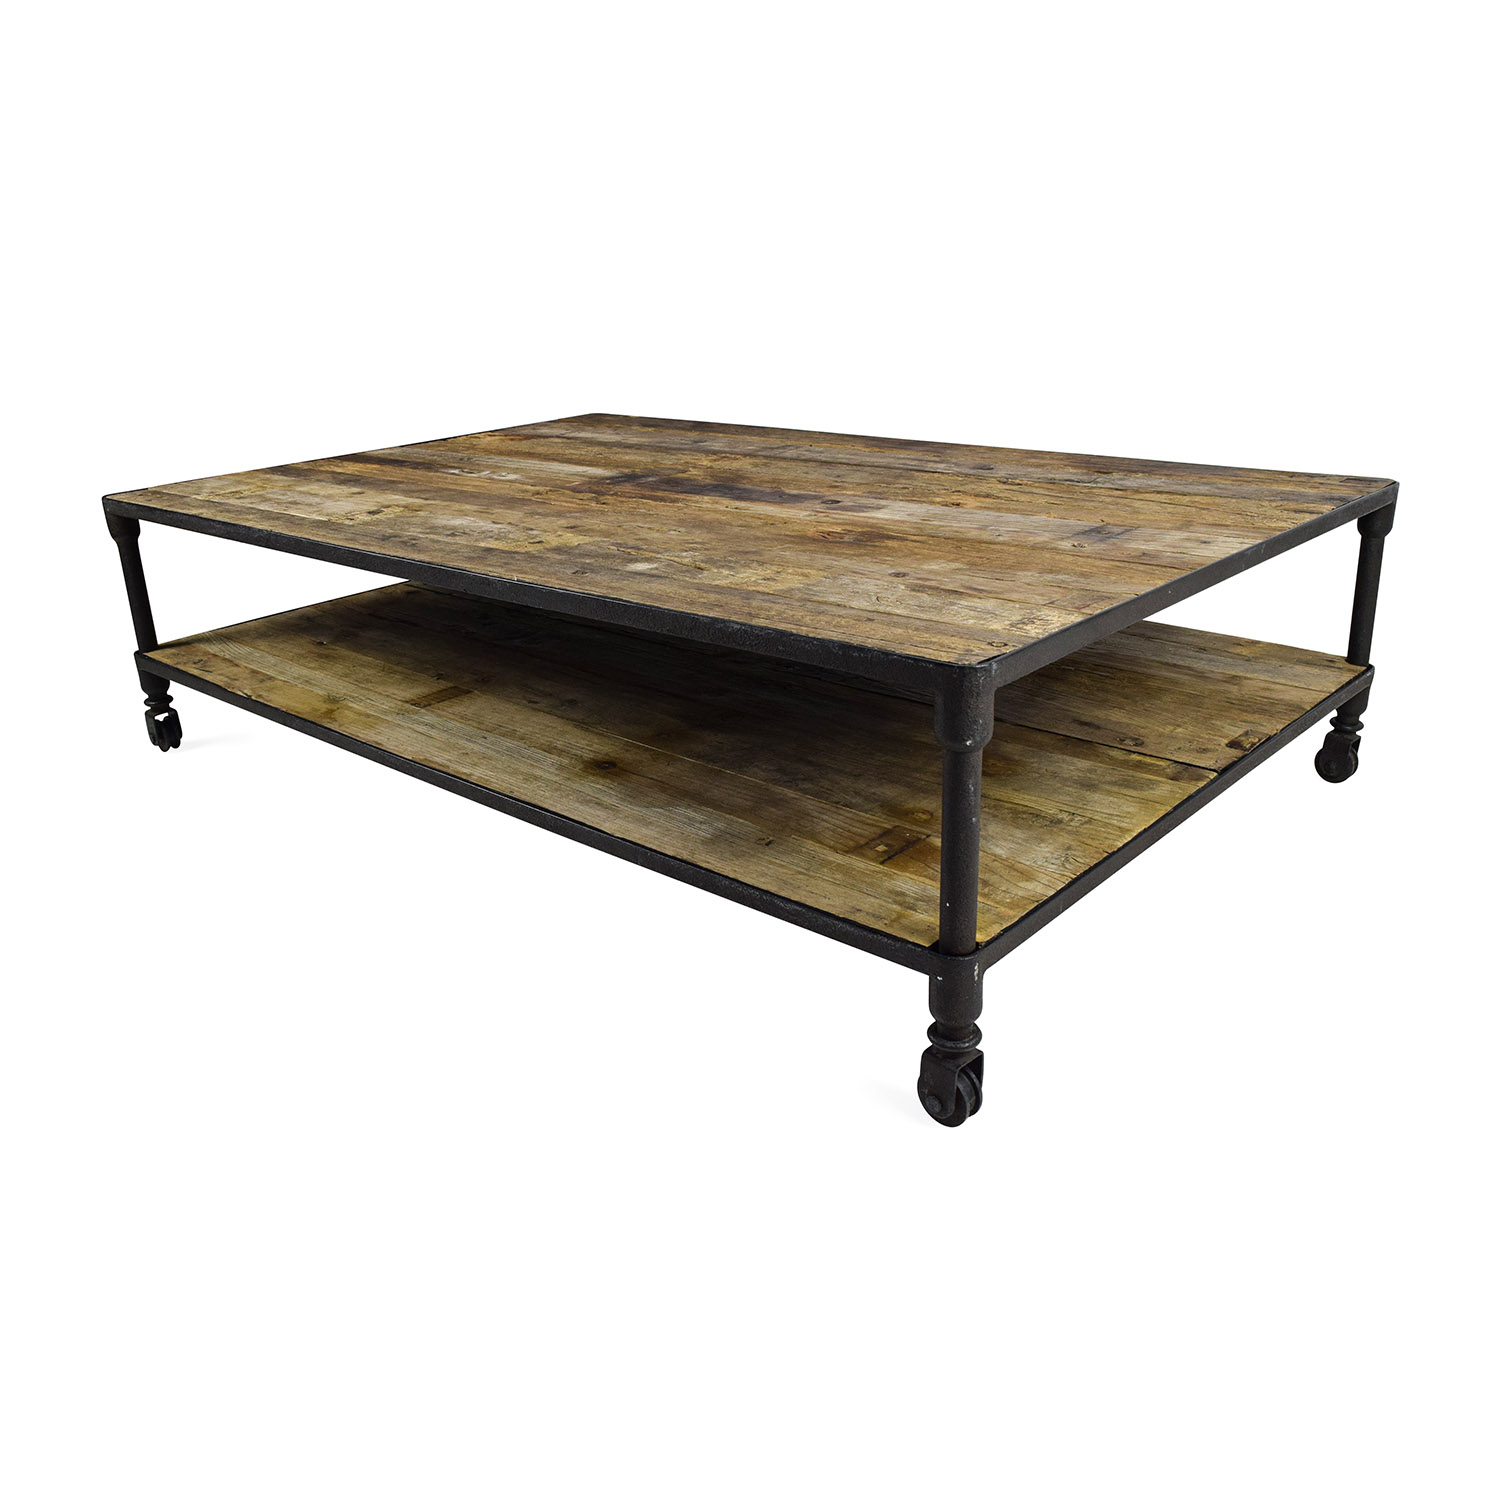 56 Off Restoration Hardware Restoration Hardware Oversized Coffee Table Tables